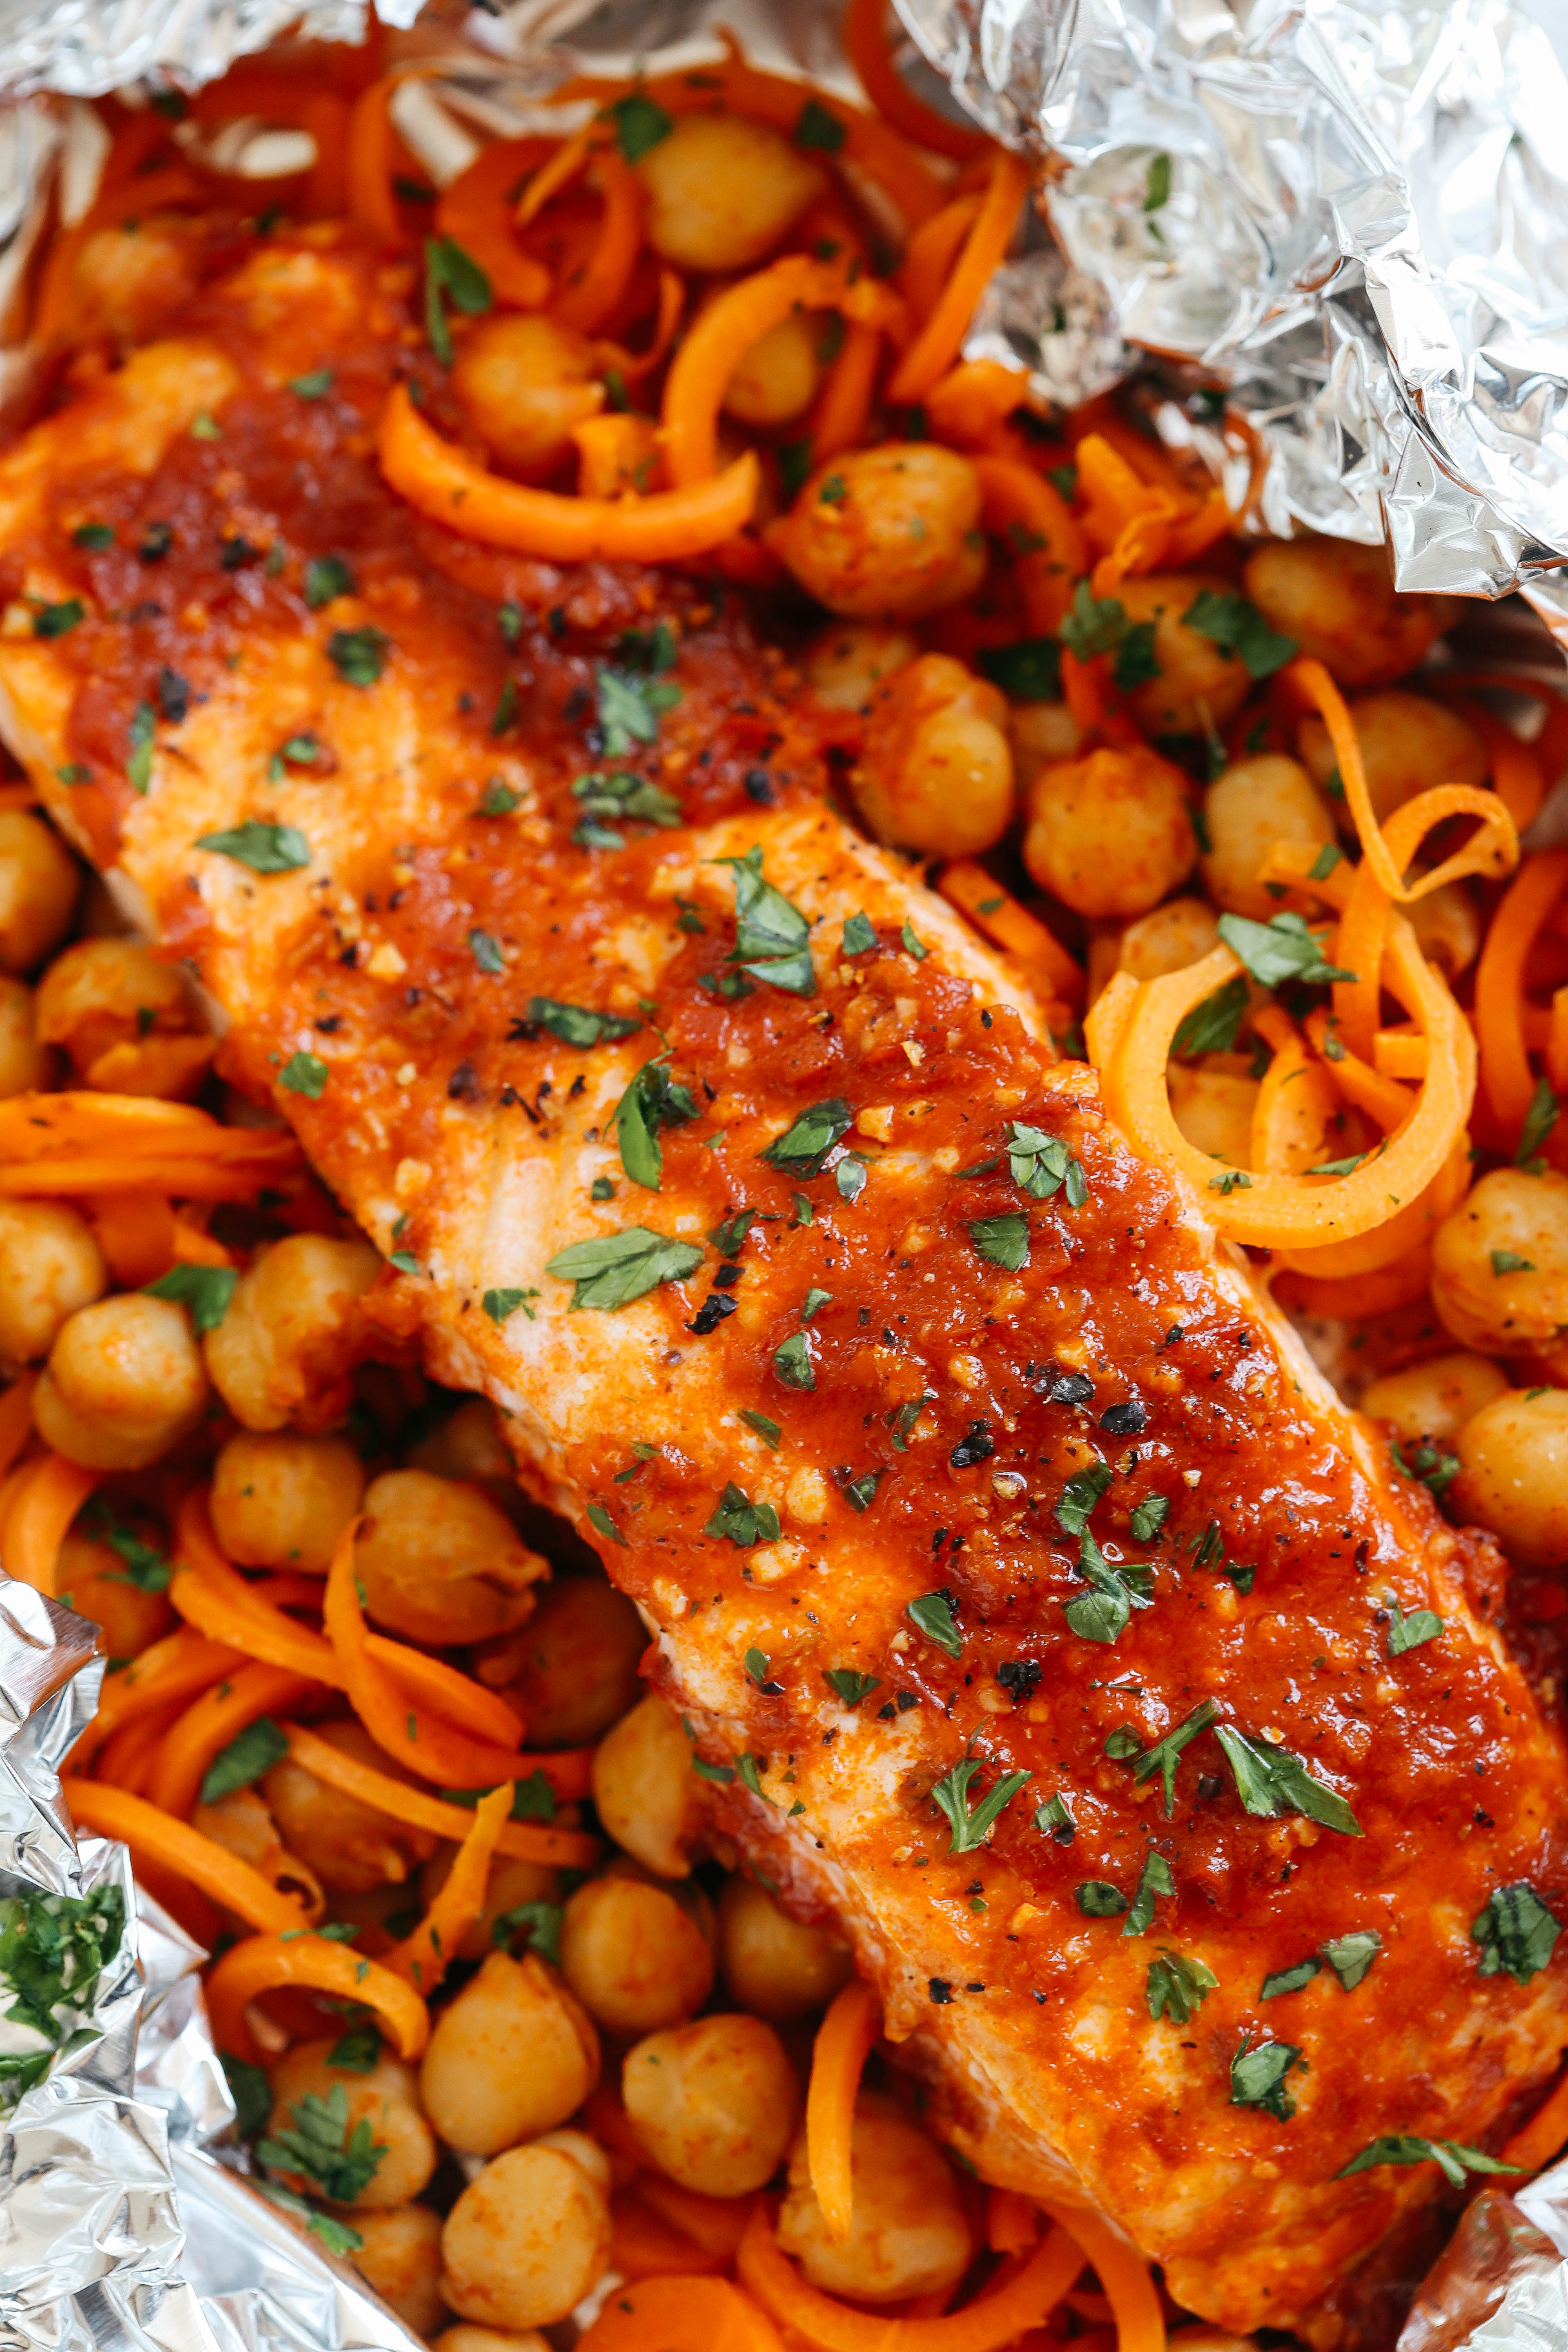 These Moroccan Salmon Foil Packets with Carrot Noodles & Chickpeas are sweet and spicy with tons of flavor and are easily made in just 20 minutes with little to no clean-up!